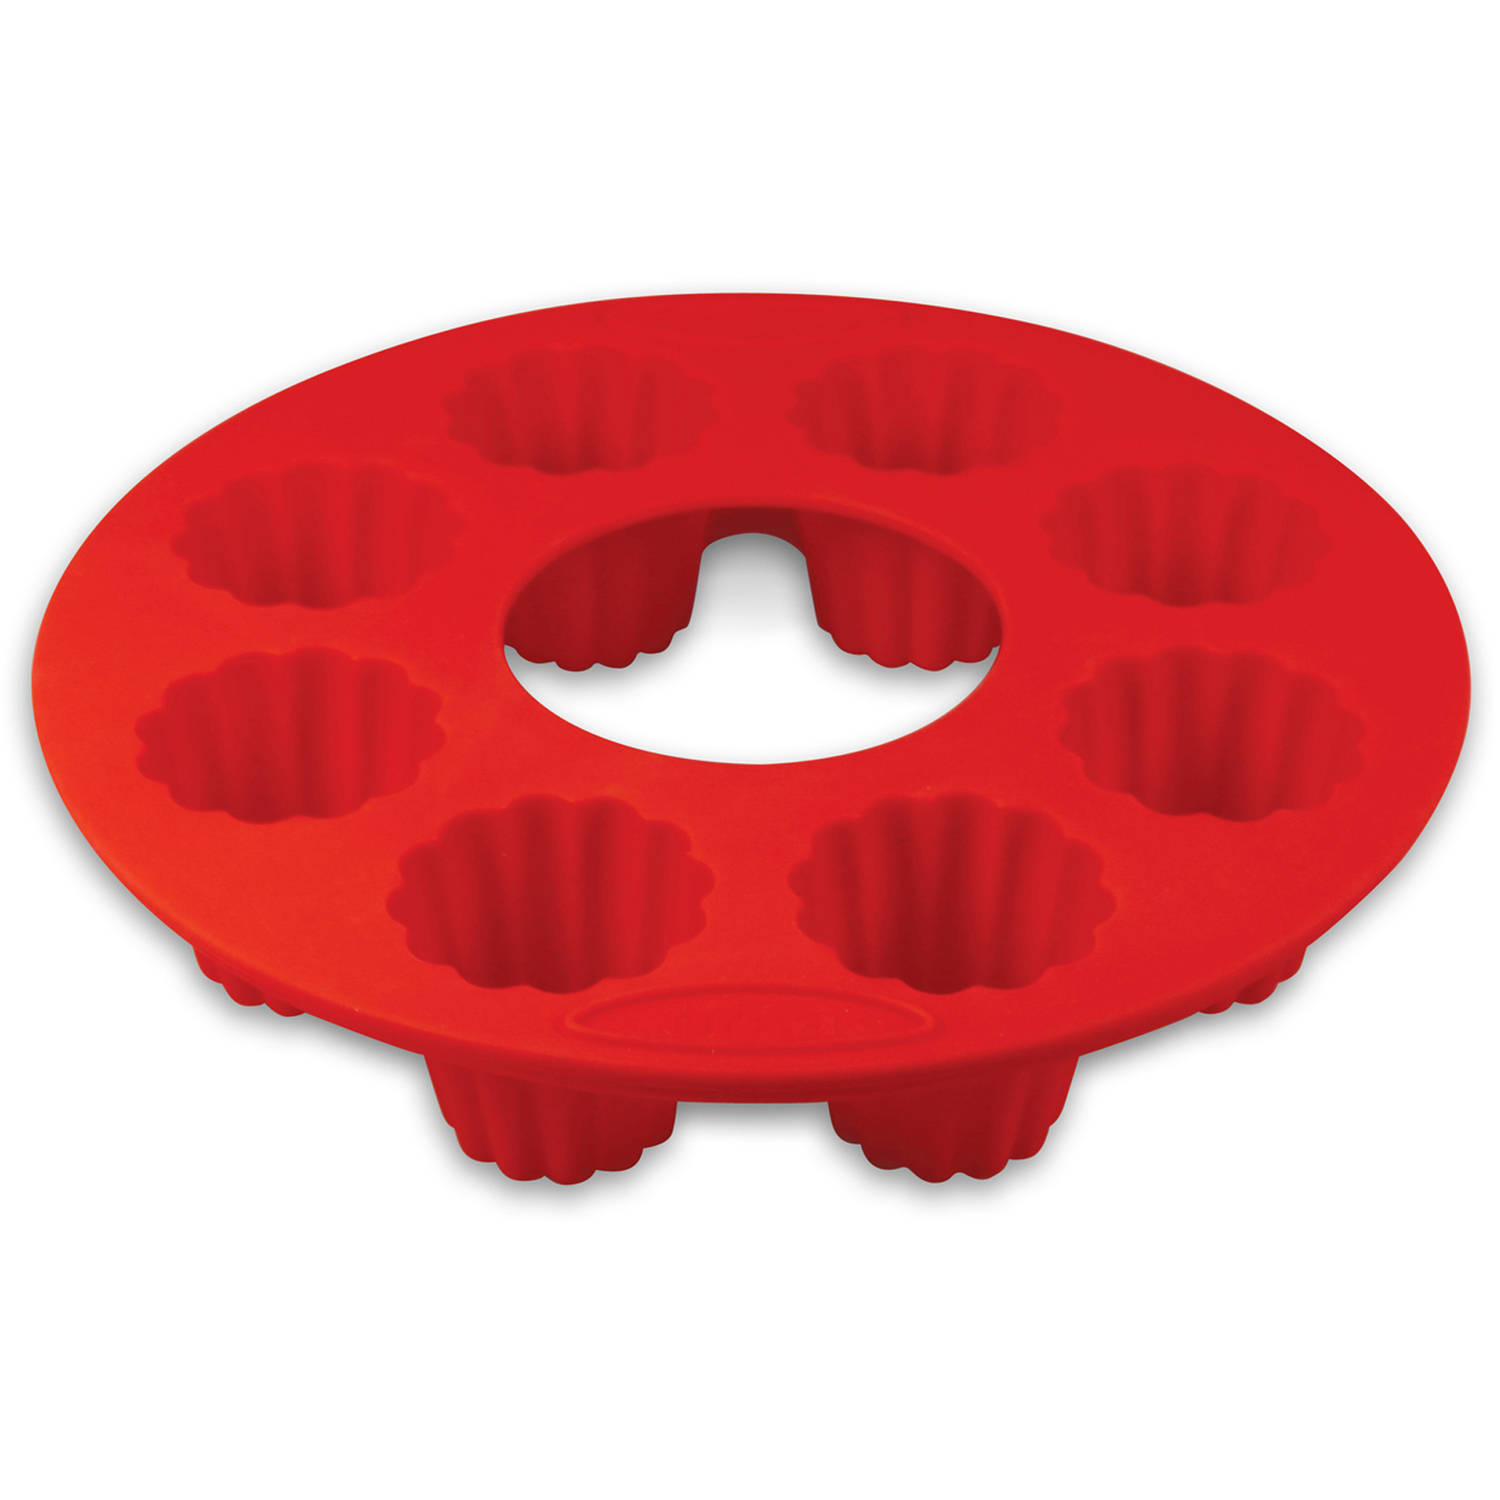 Orka OD130201 8-Mold Silicone Cannele Pan, Set of 2, Red